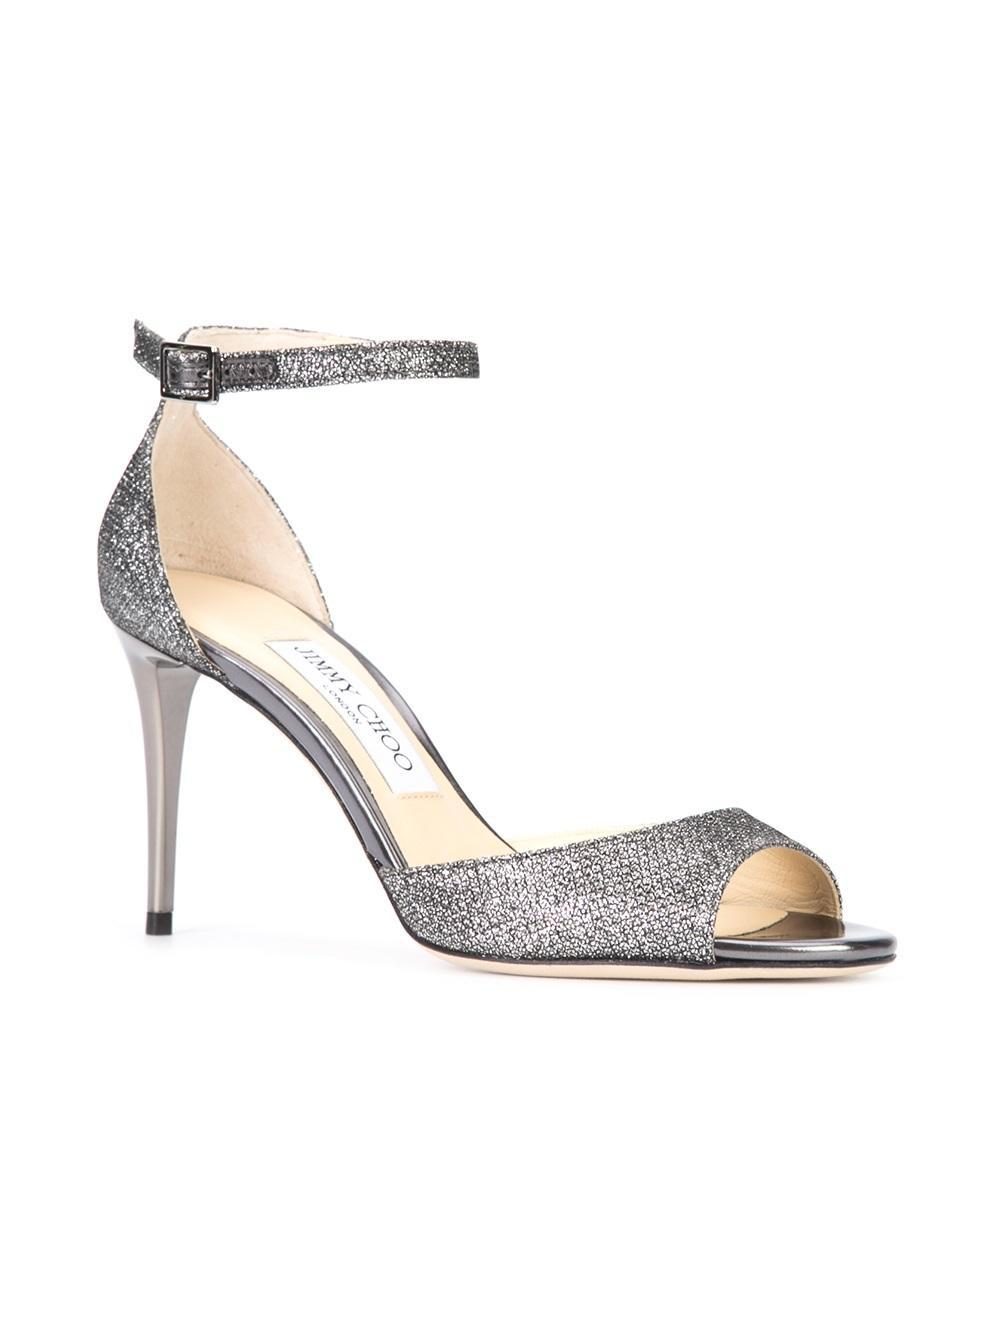 19fa3674bc5 Lyst - Jimmy Choo Annie 85 Anthracite Lam Glitter Fabric Peep Toe Sandals  Anthracite 34 in Metallic - Save 30%